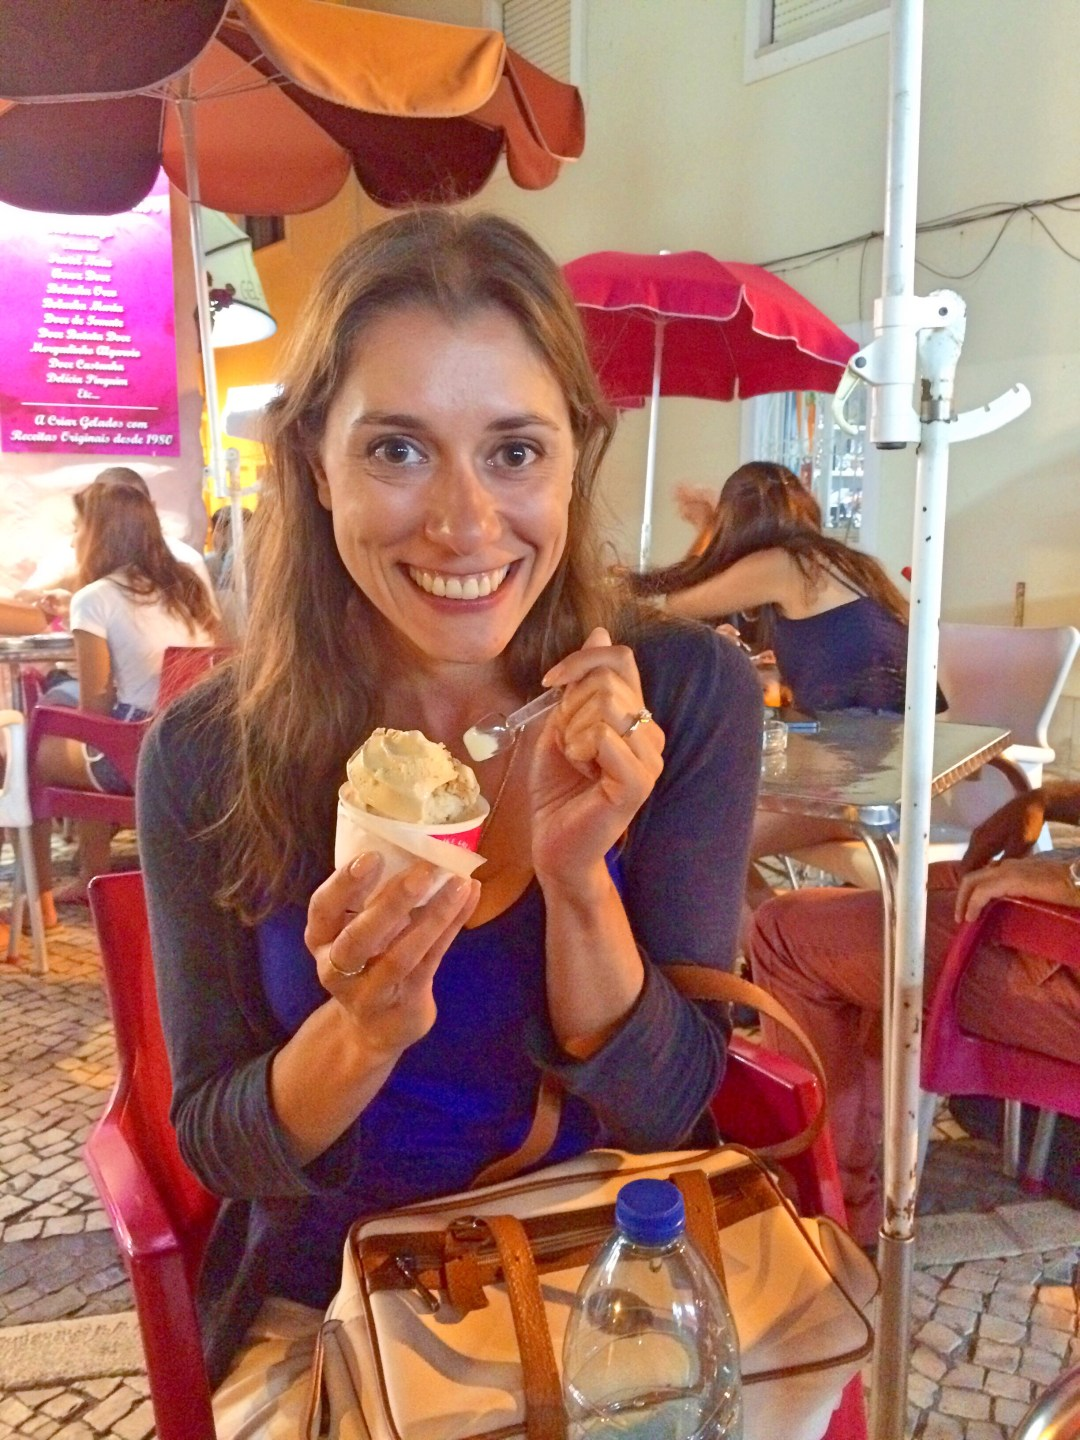 Ice cream in the Algarve